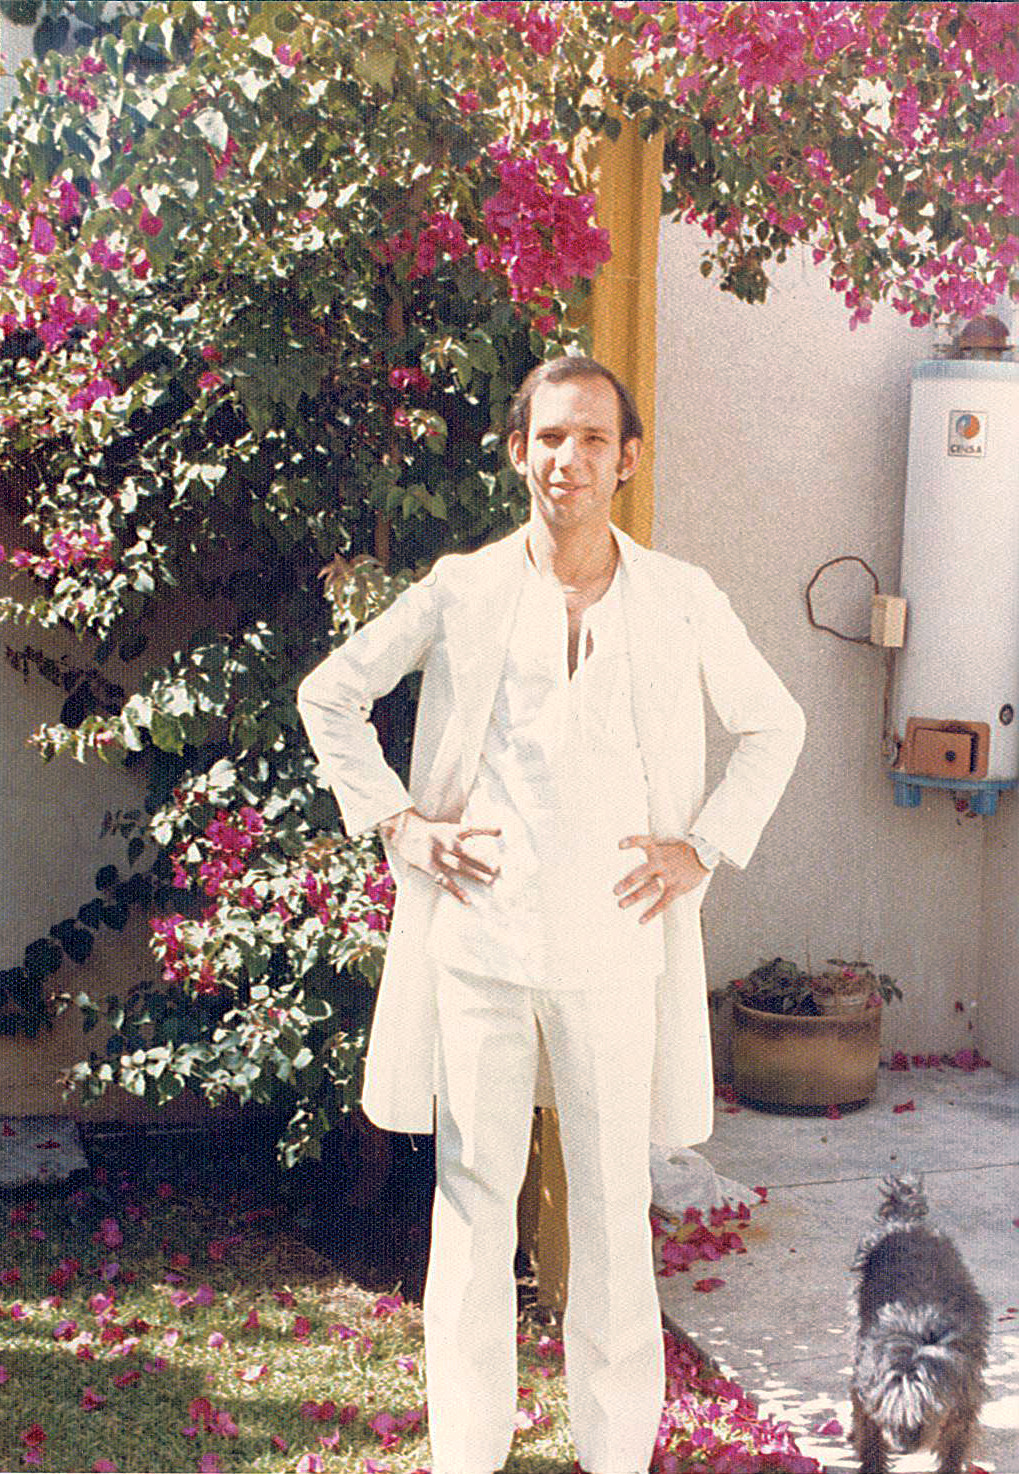 Neil during his studies in Guadalajara, Mexico.